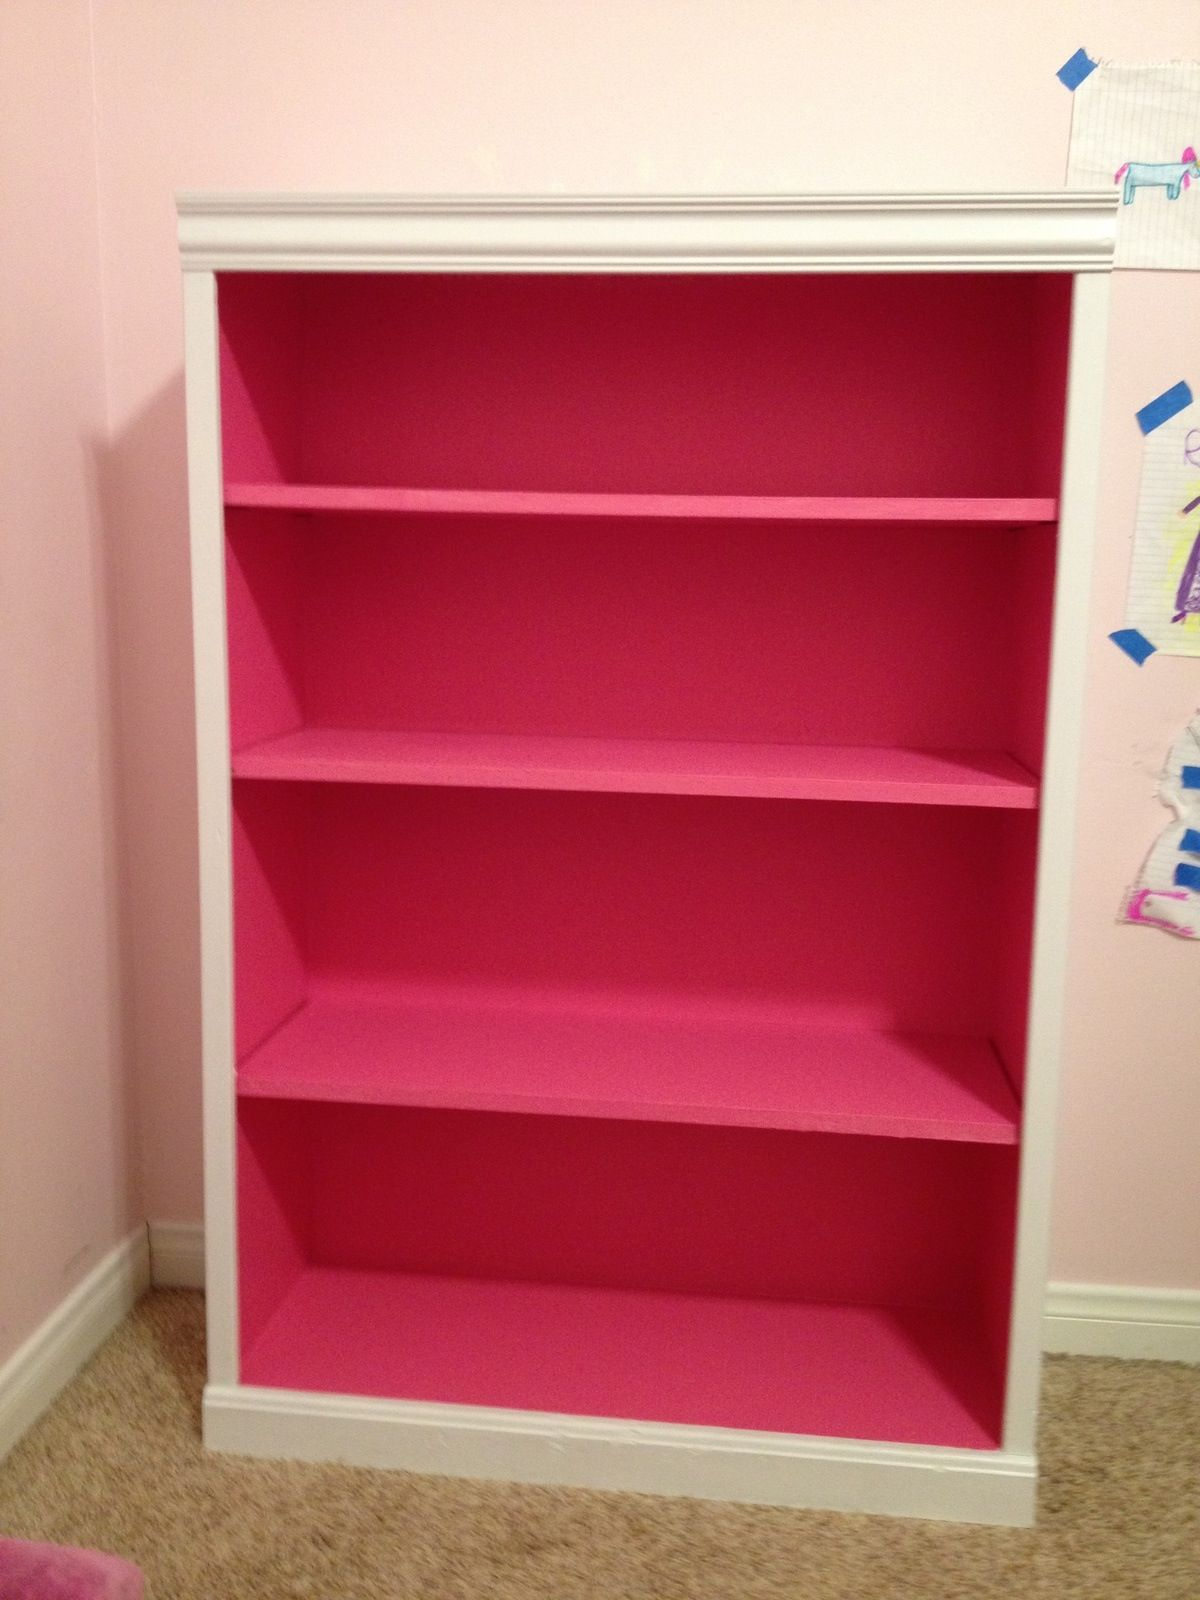 White Bookshelf With Hot Pink Inside For A Splash Of Except I Would Prolly Do It Opposite Or Just Solid